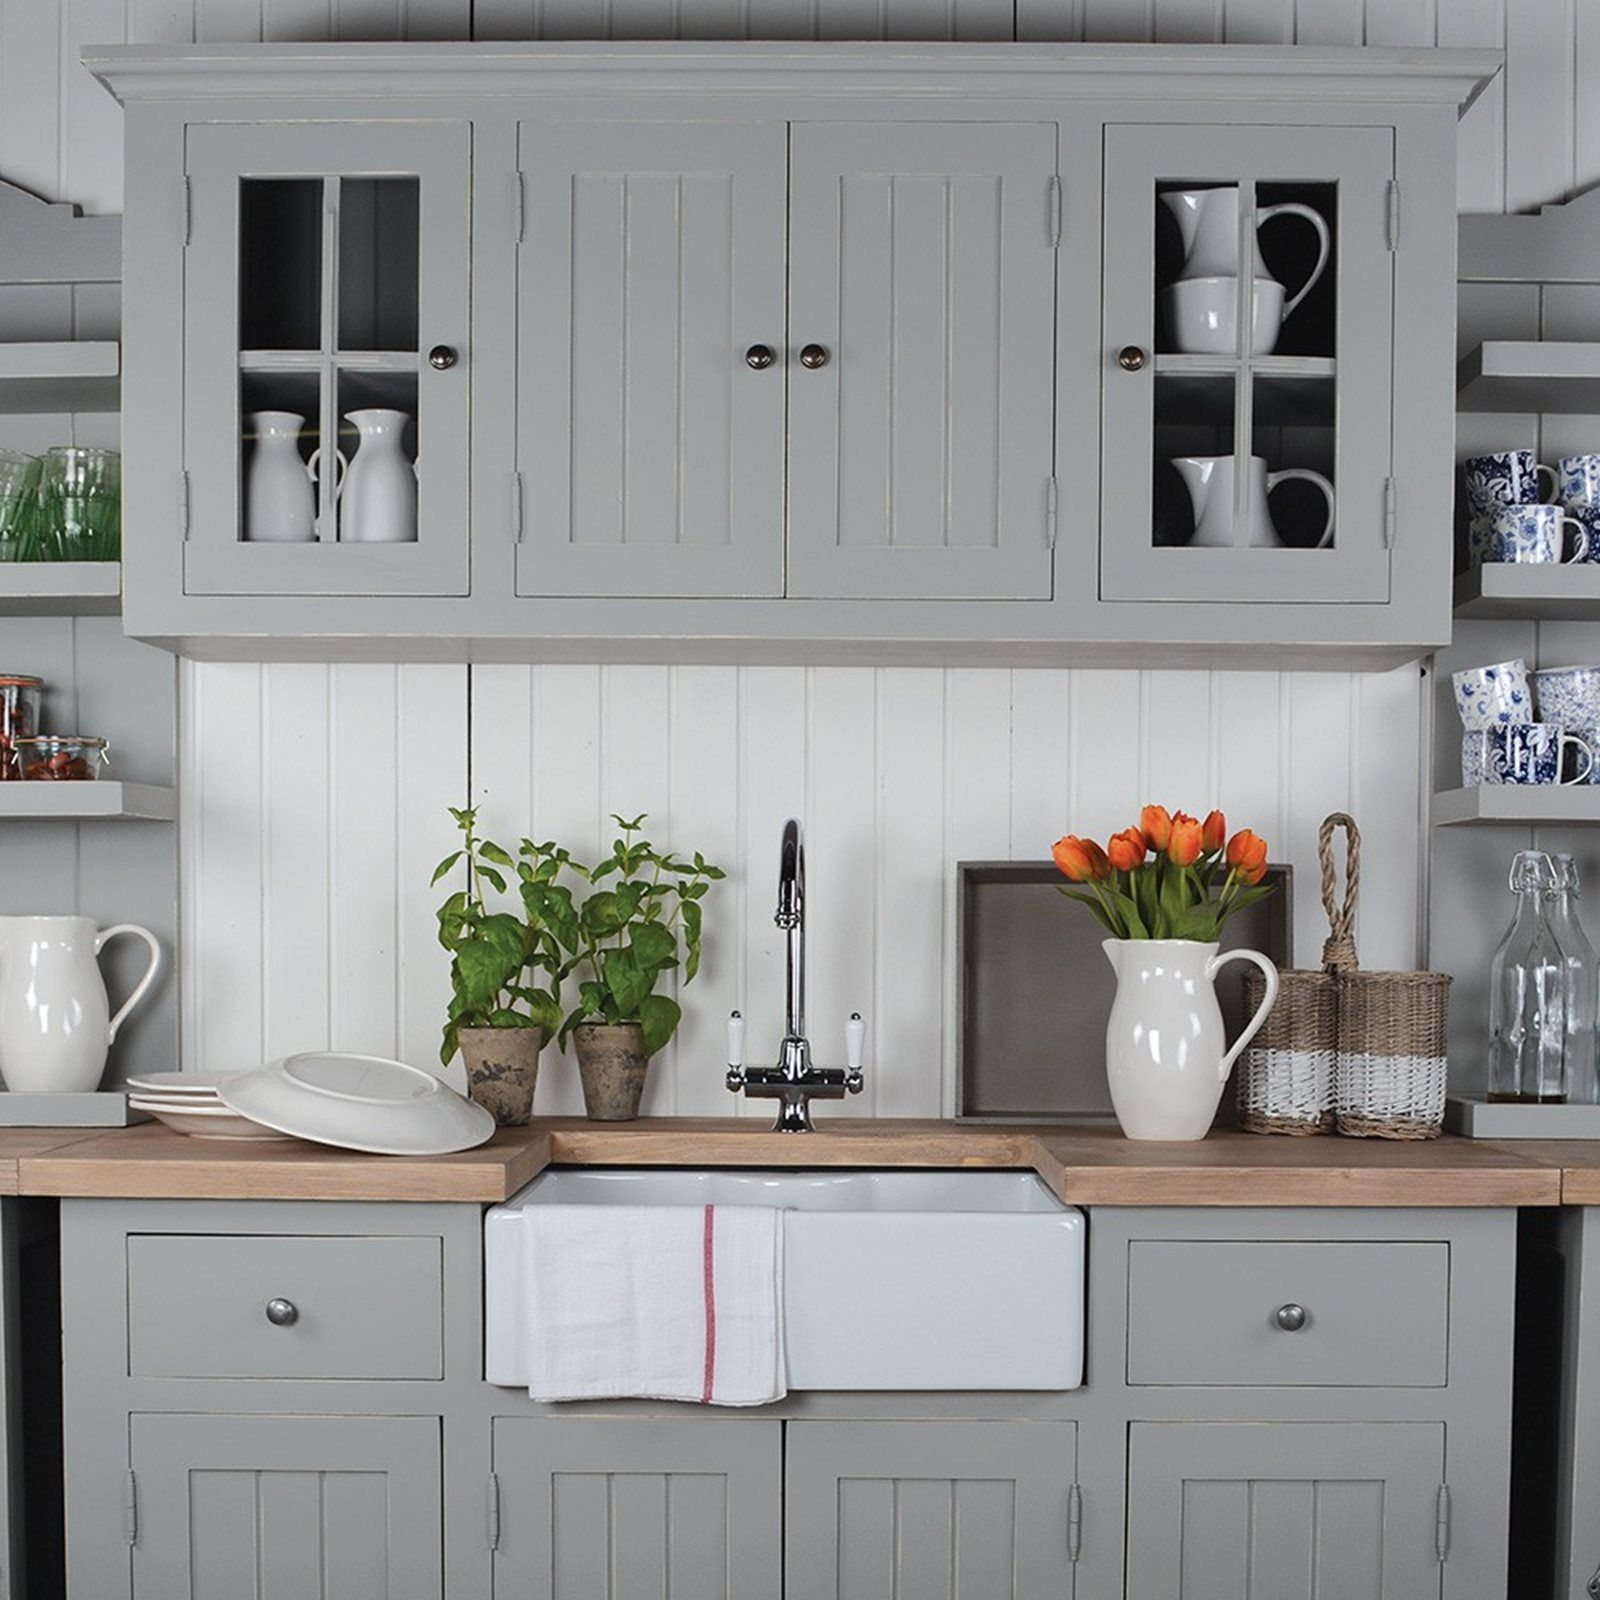 HICKS and HICKS Kitchen Utility Room Sink Unit This stand alone